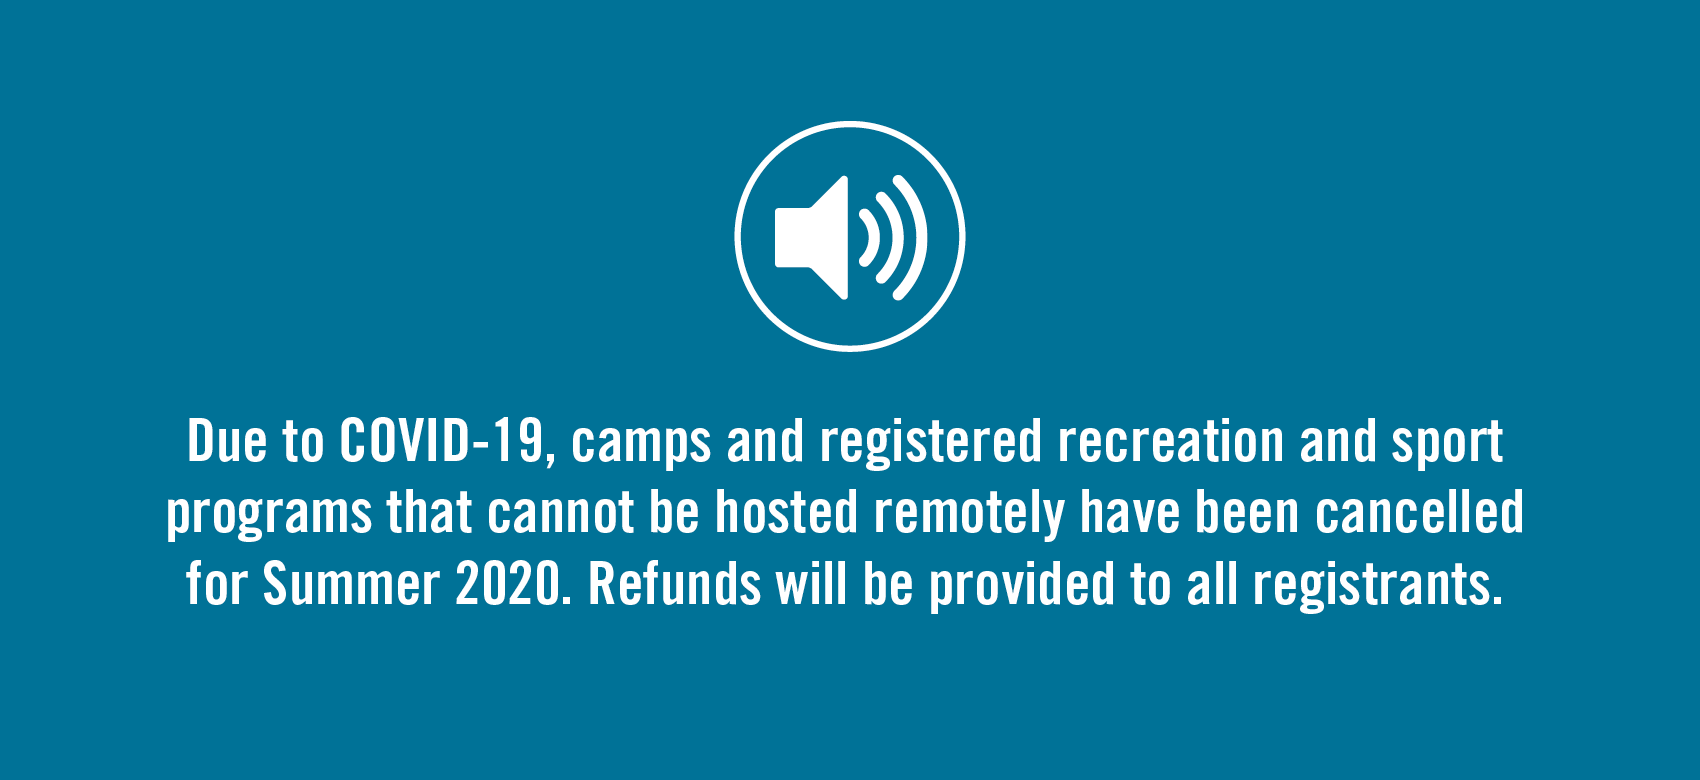 Due to COVID-19, camps and registered recreation and sport programs that cannot be hosted remotely have been cancelled for Summer 2020. Refunds will be provided to all registrants.